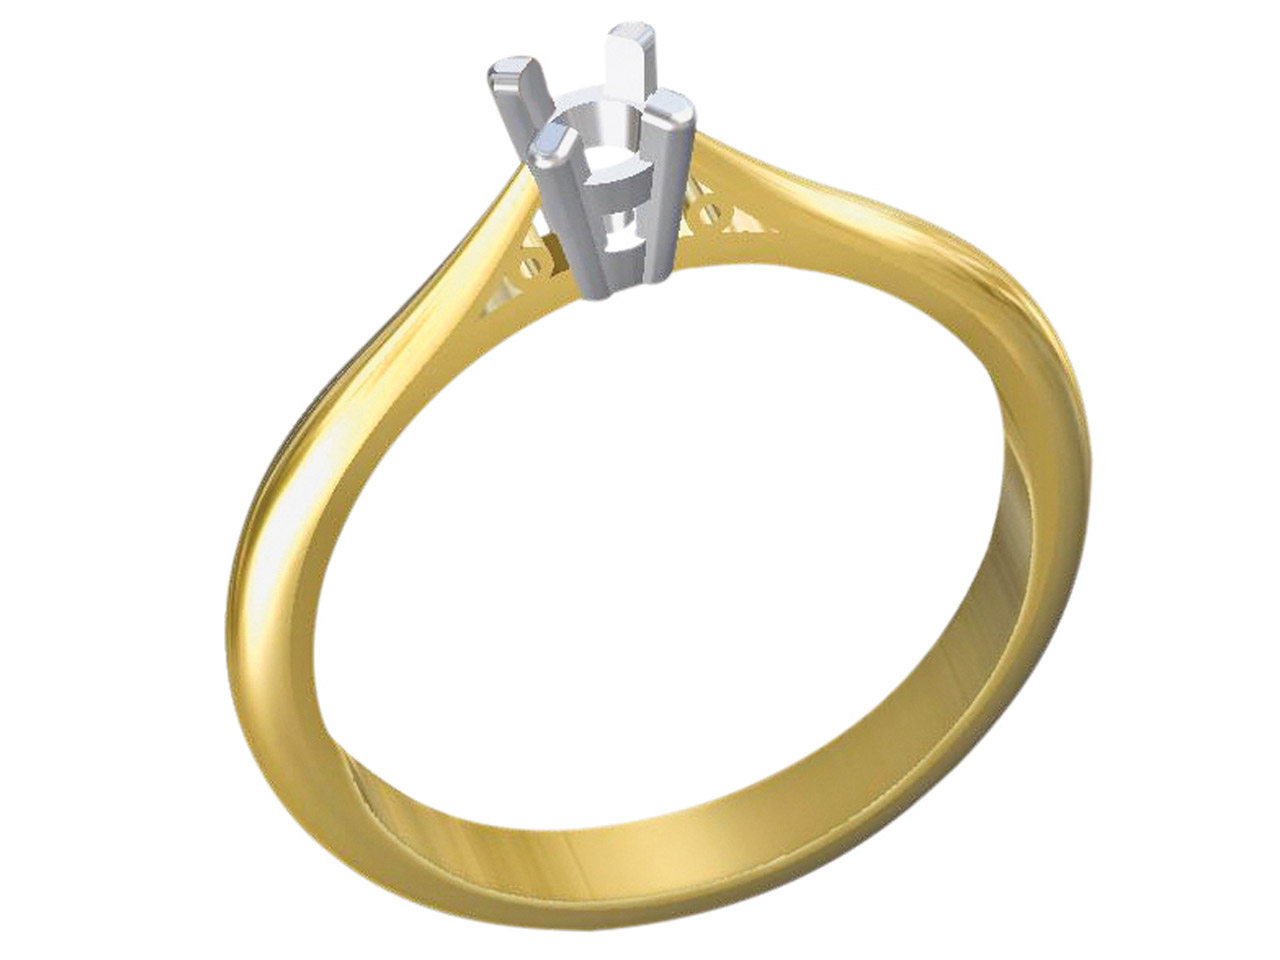 9ct Yellow Gold Heavy Ss2 Tapered  Ring Shank With Cheniers Size M